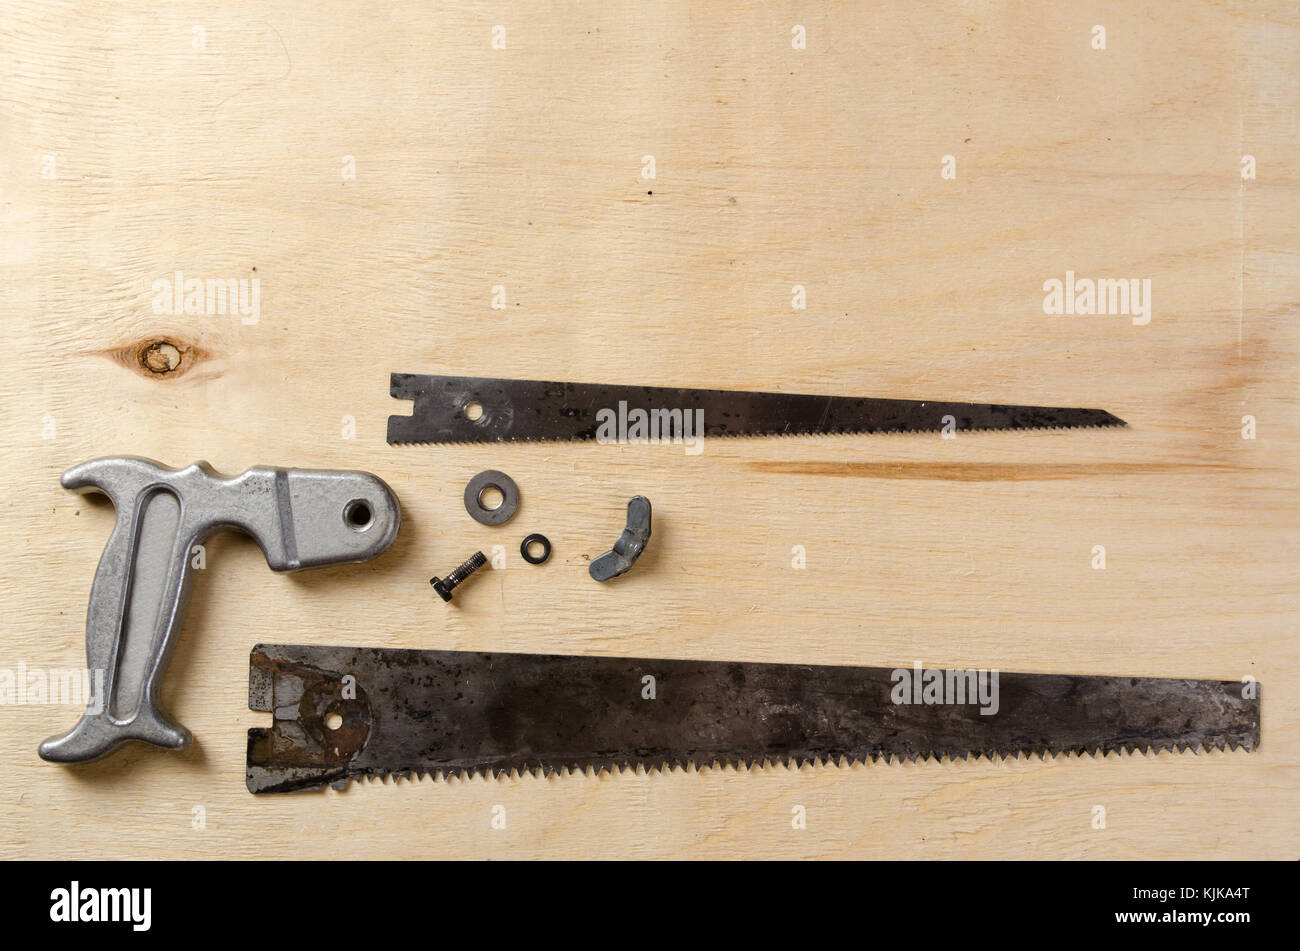 disassemble hand saw lying on a sheet of plywood. flat view. - Stock Image